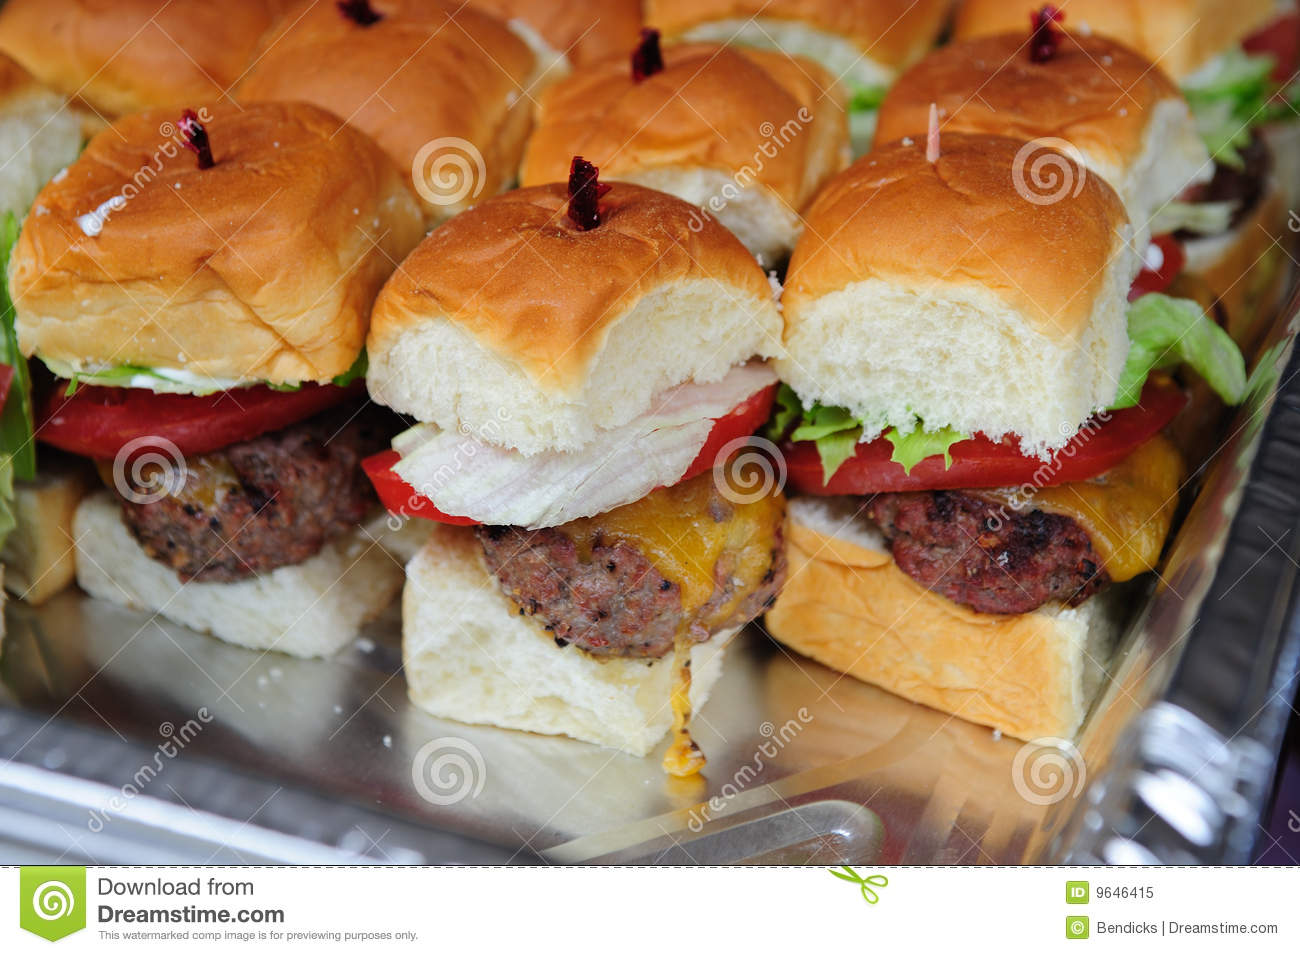 Little hamburgers with lettuce, tomato and cheese ready to serve.